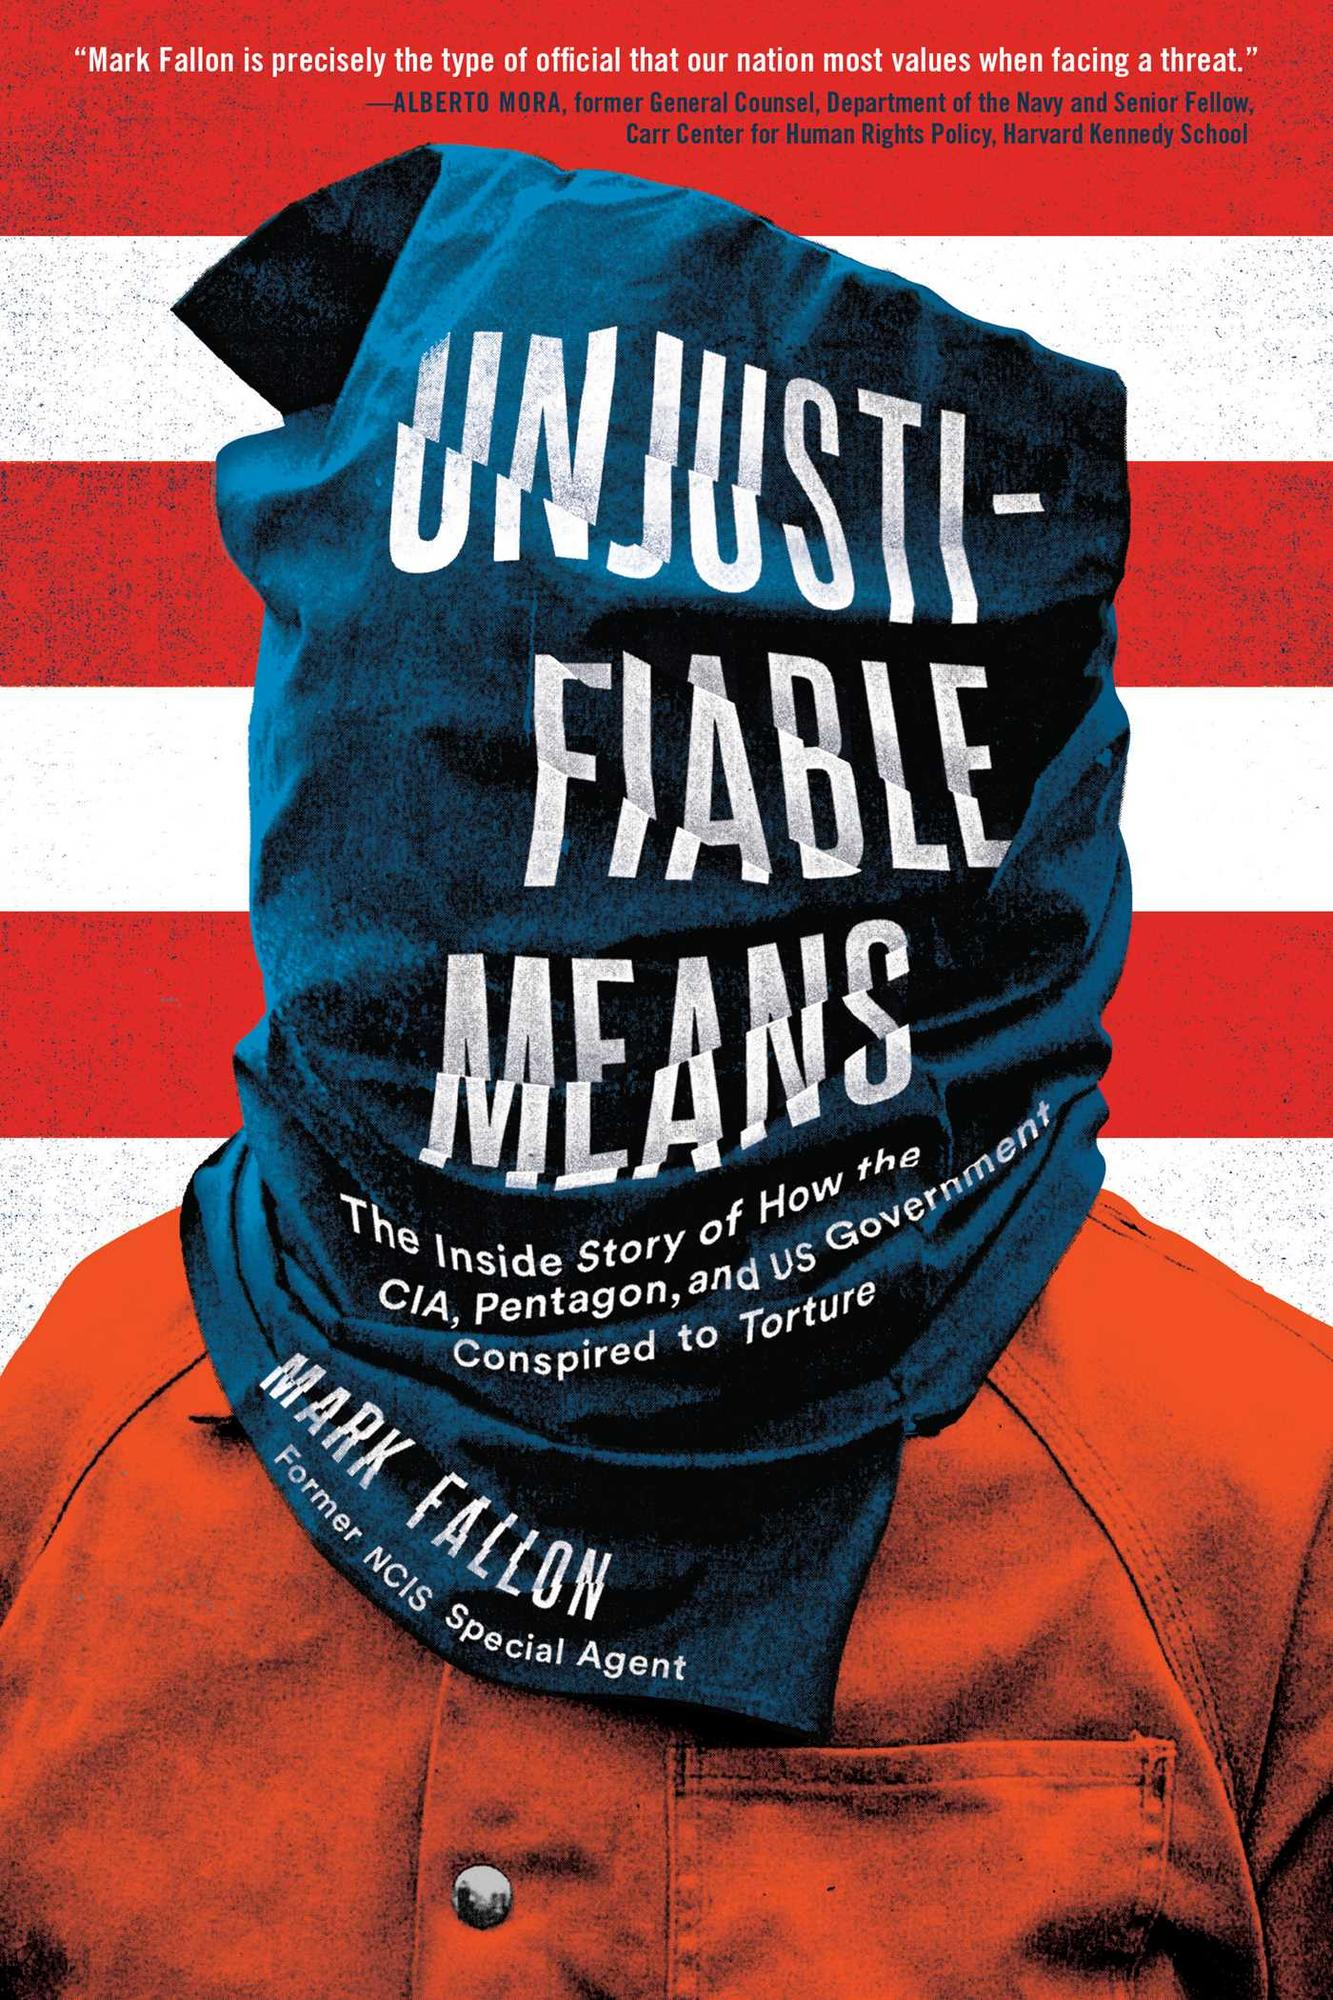 unjustifiable-meansbook